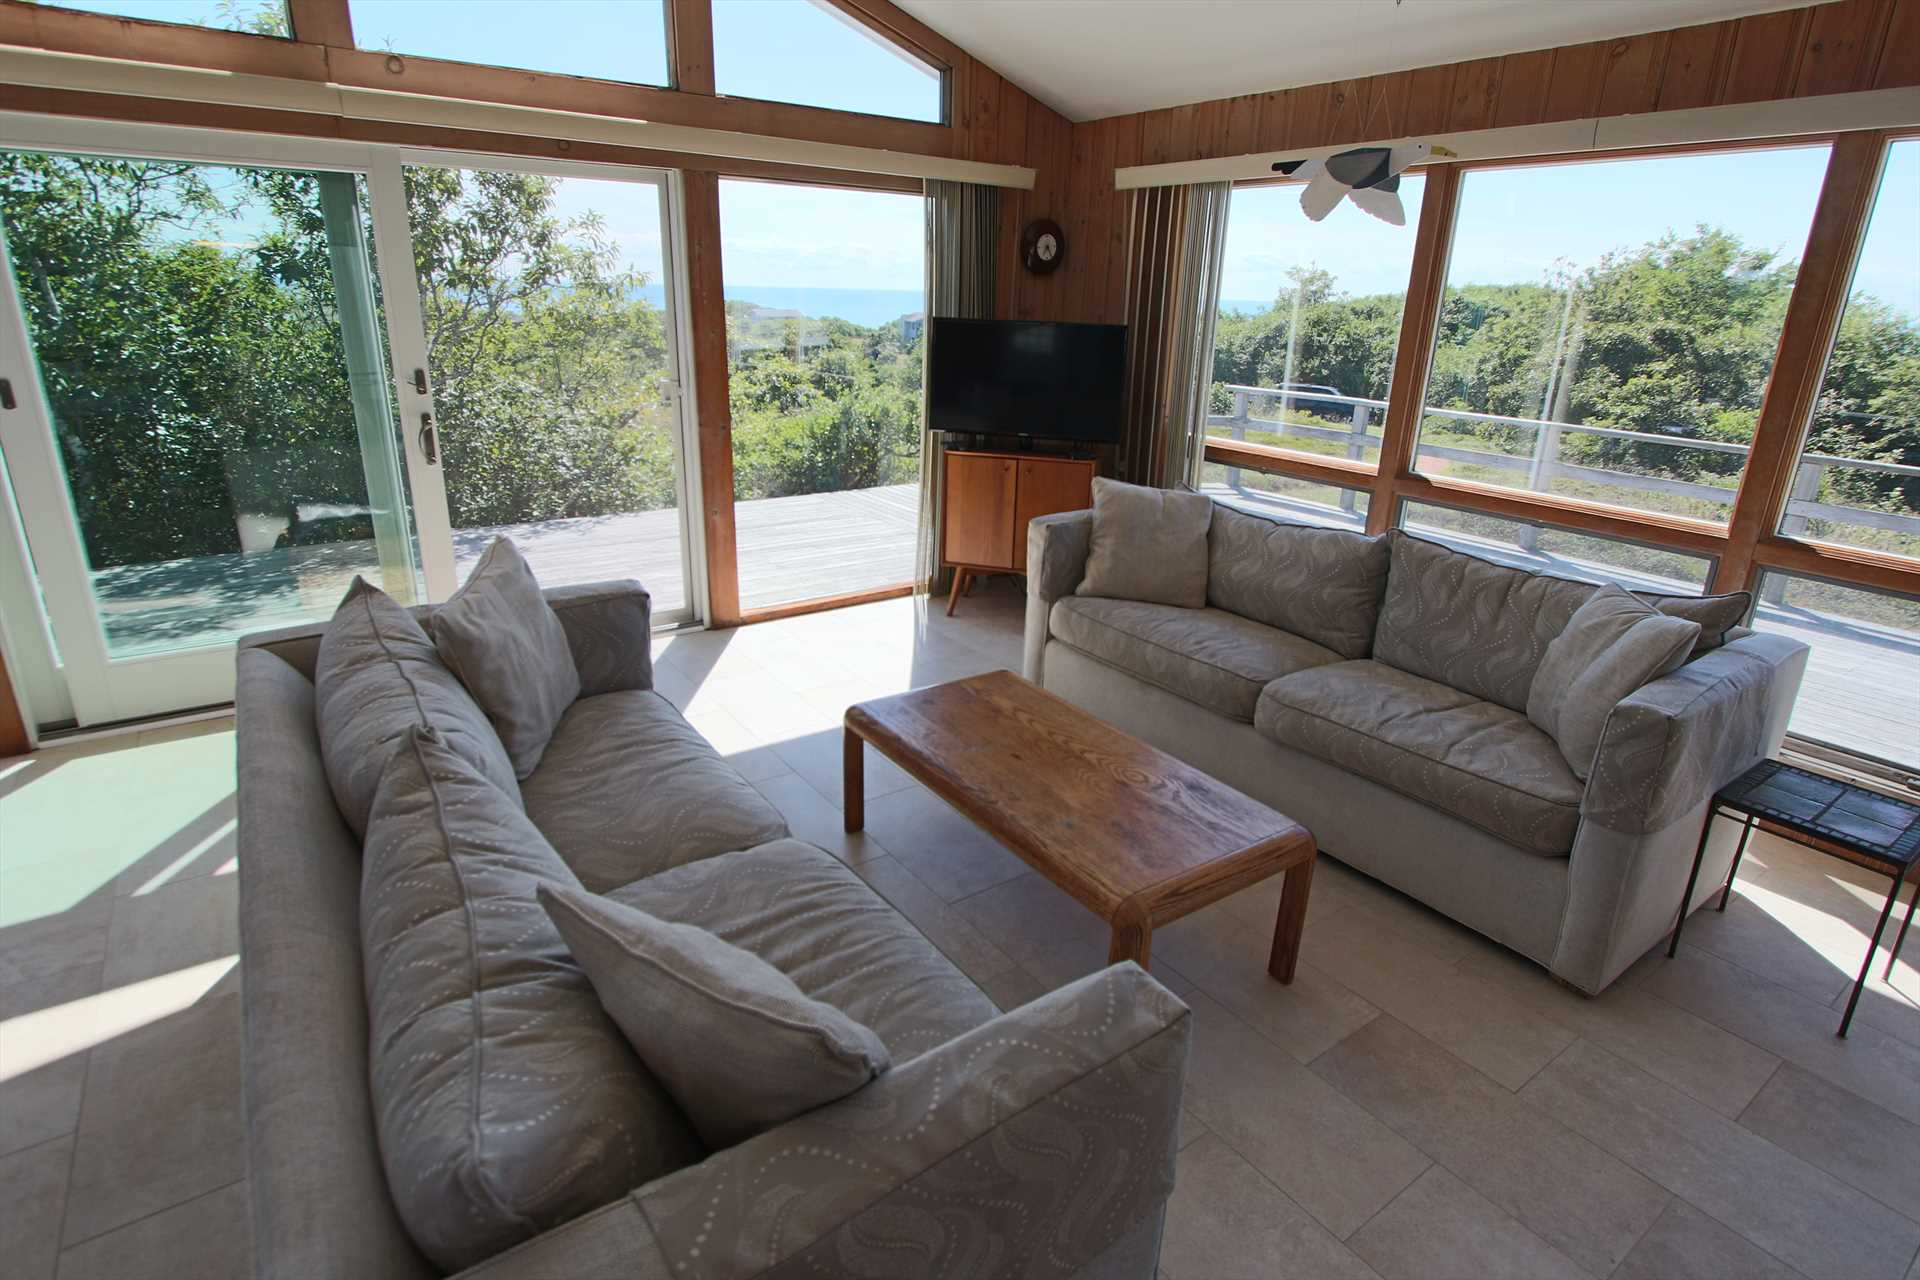 Living Area with Water View of Cape Cod Bay